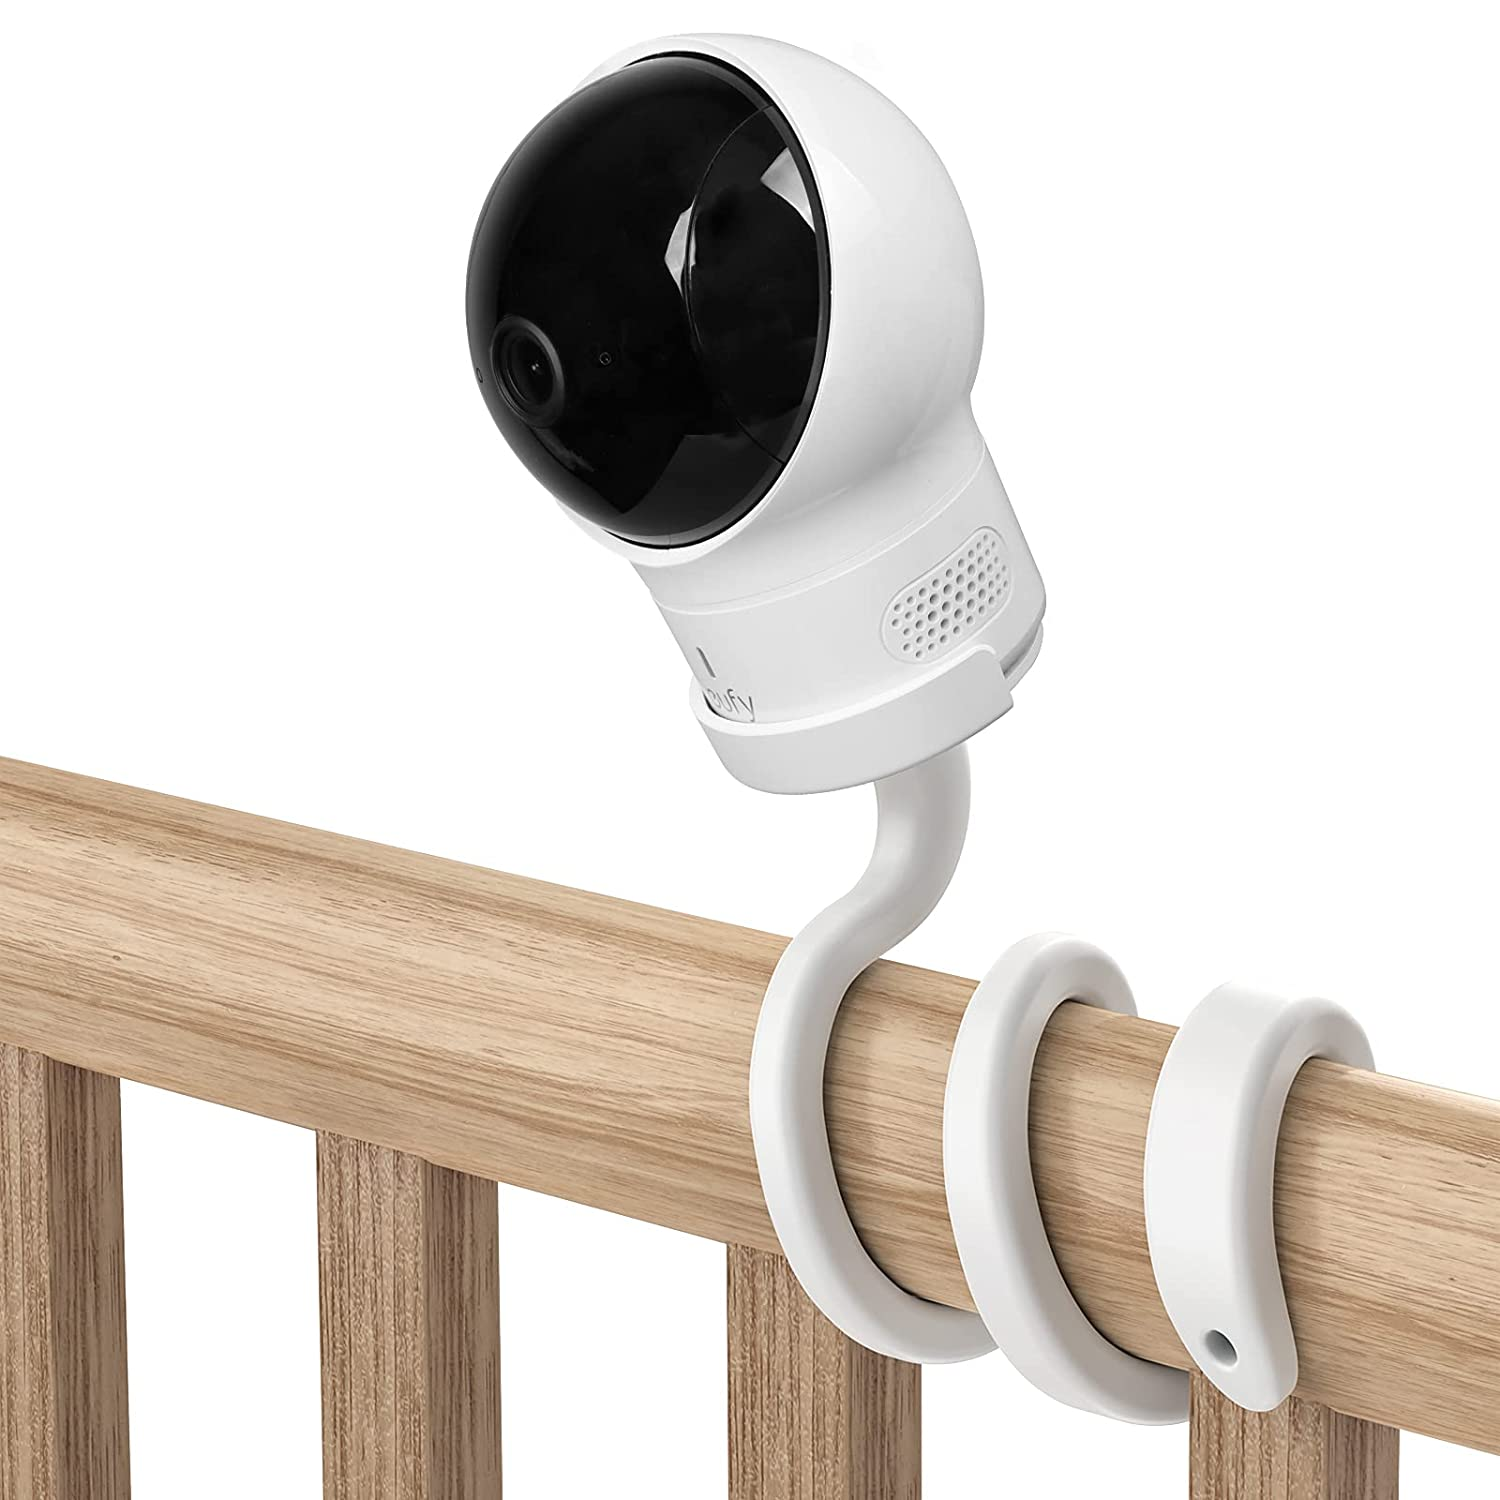 HOLACA Baby Monitor Flexible Mount Crib Mount for Eufy Spaceview, Spaceview Pro and Spaceview S Baby Monitor - Twist Versatile Mounting Kit for eufy Baby Monitor